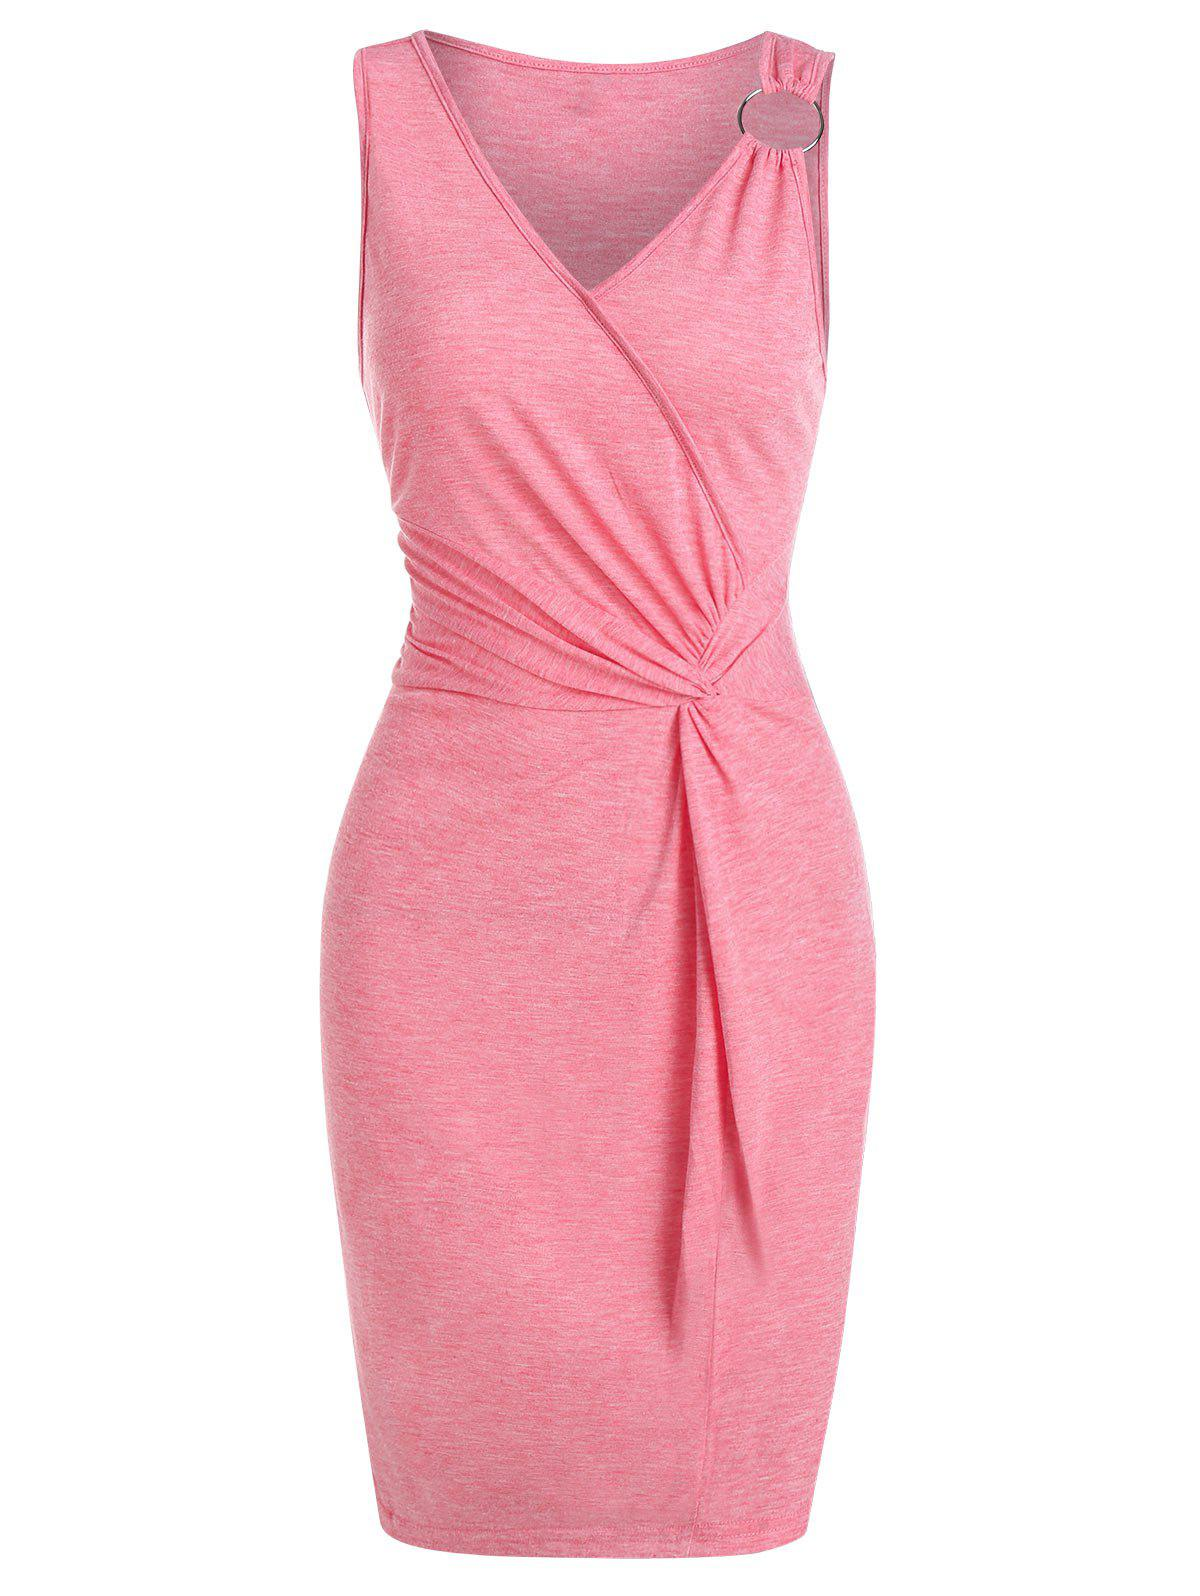 Discount Twist Front O-ring Heathered Bodycon Dress